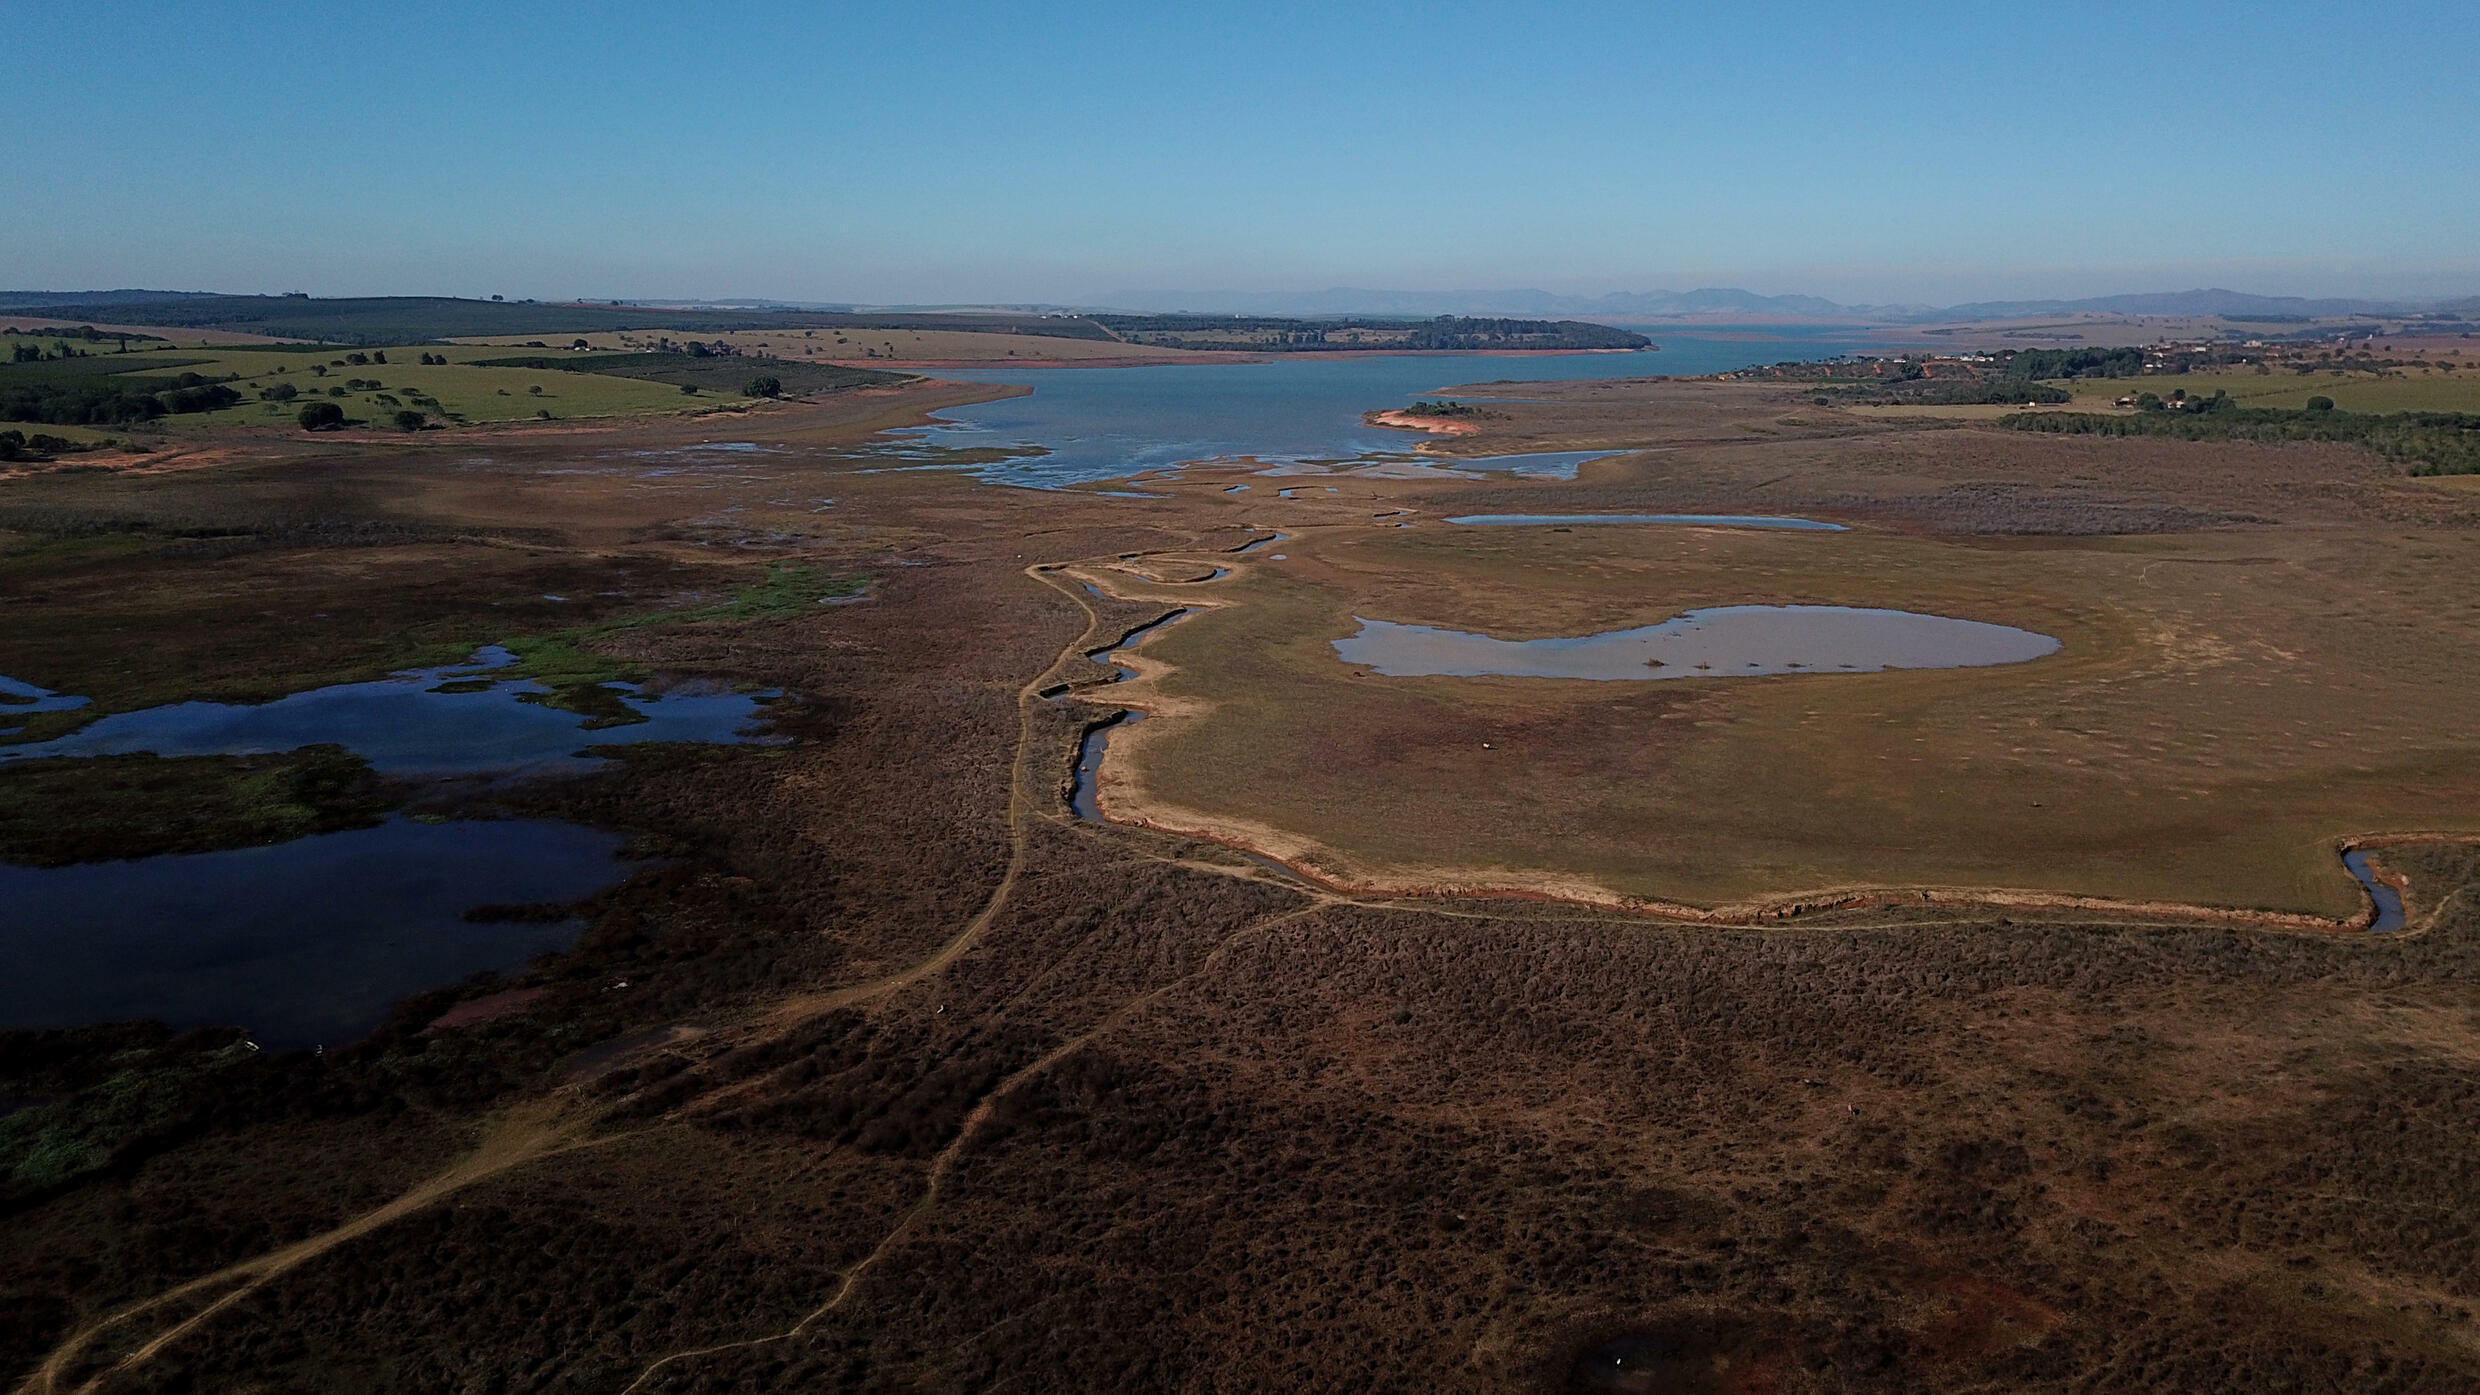 Experts say the drought in Brazil's south is caused mainly by the La Nina weather phenomenon which causes cyclical cooling of Pacific Ocean surface temperatures, while in the central-west, they point the finger at Amazon deforestation